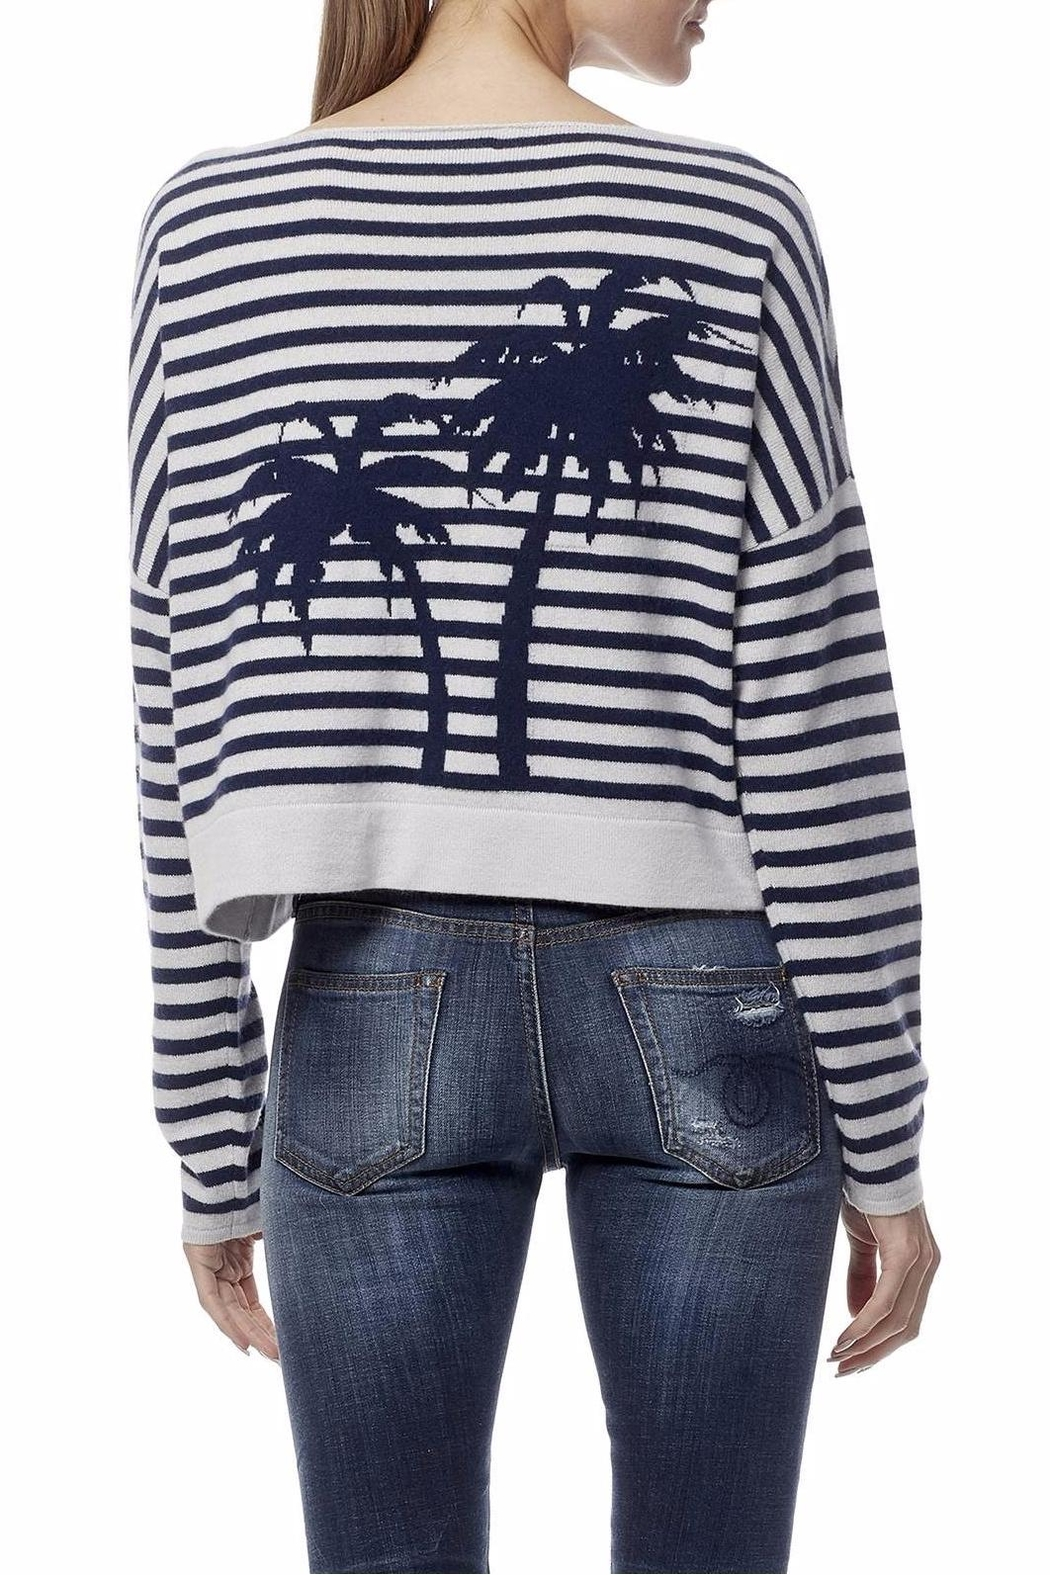 360 Cashmere Palm Tree Sweater - Front Cropped Image